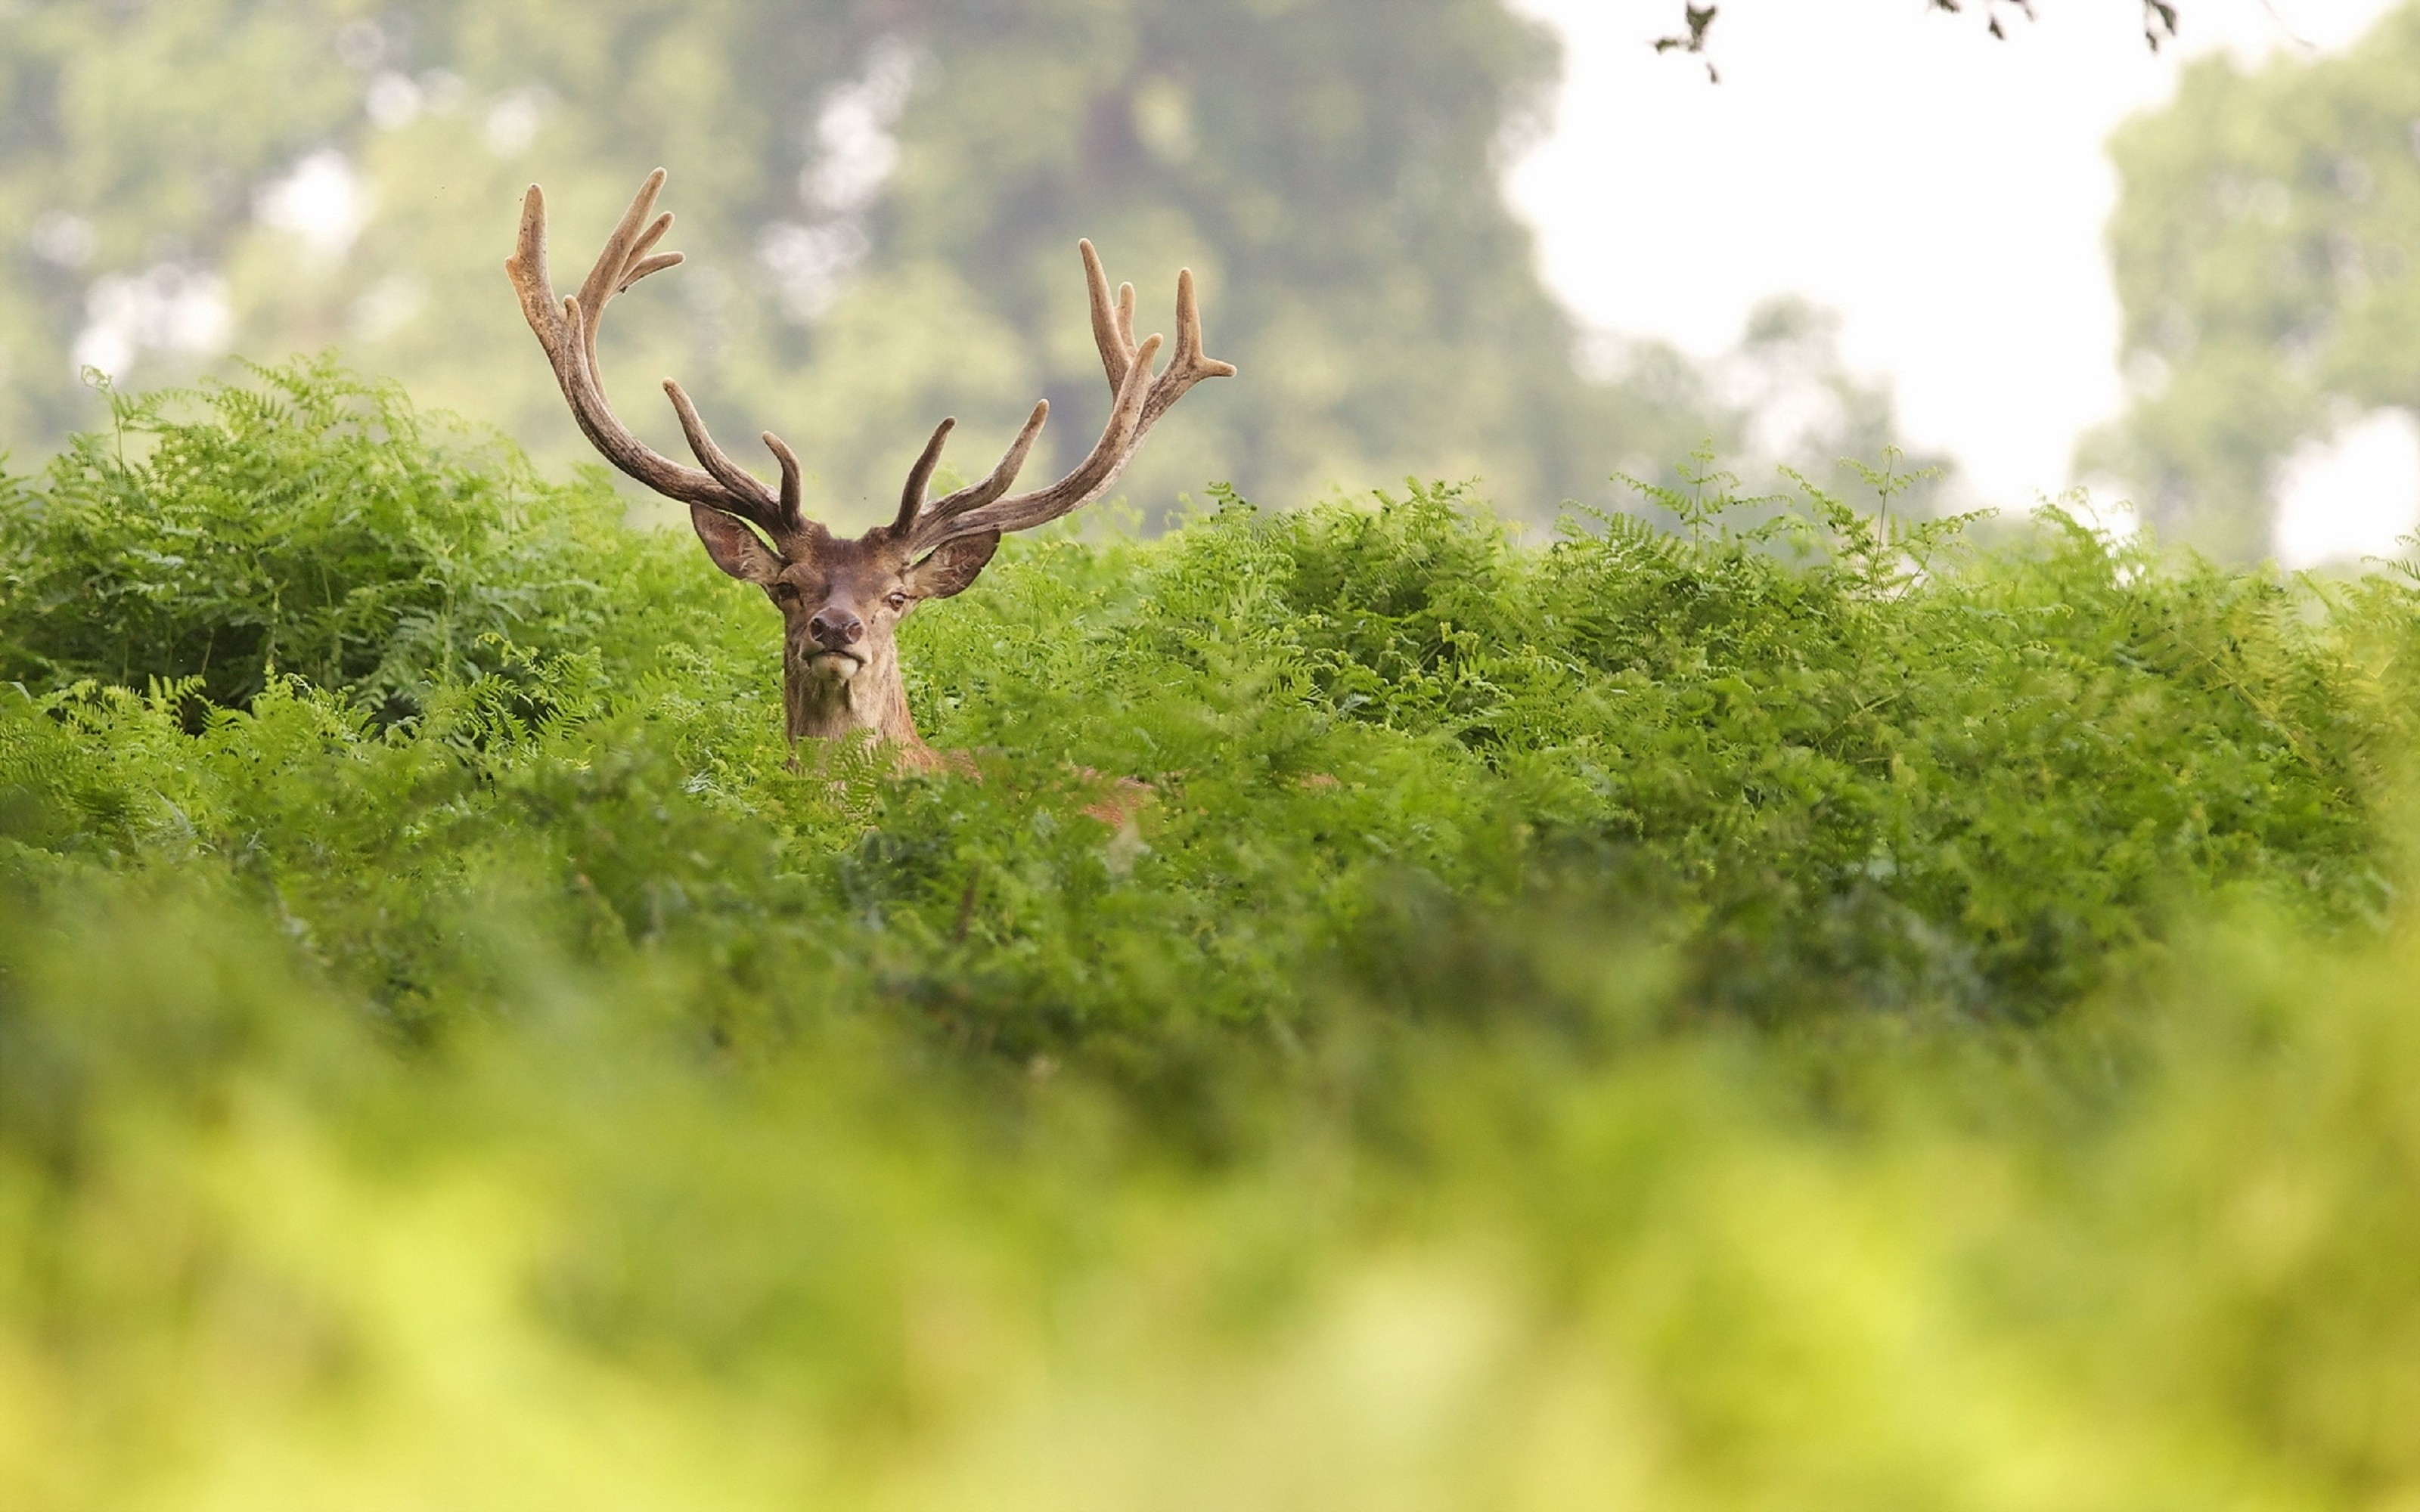 125157 download wallpaper Animals, Grass, Hide, Deer, Horns screensavers and pictures for free